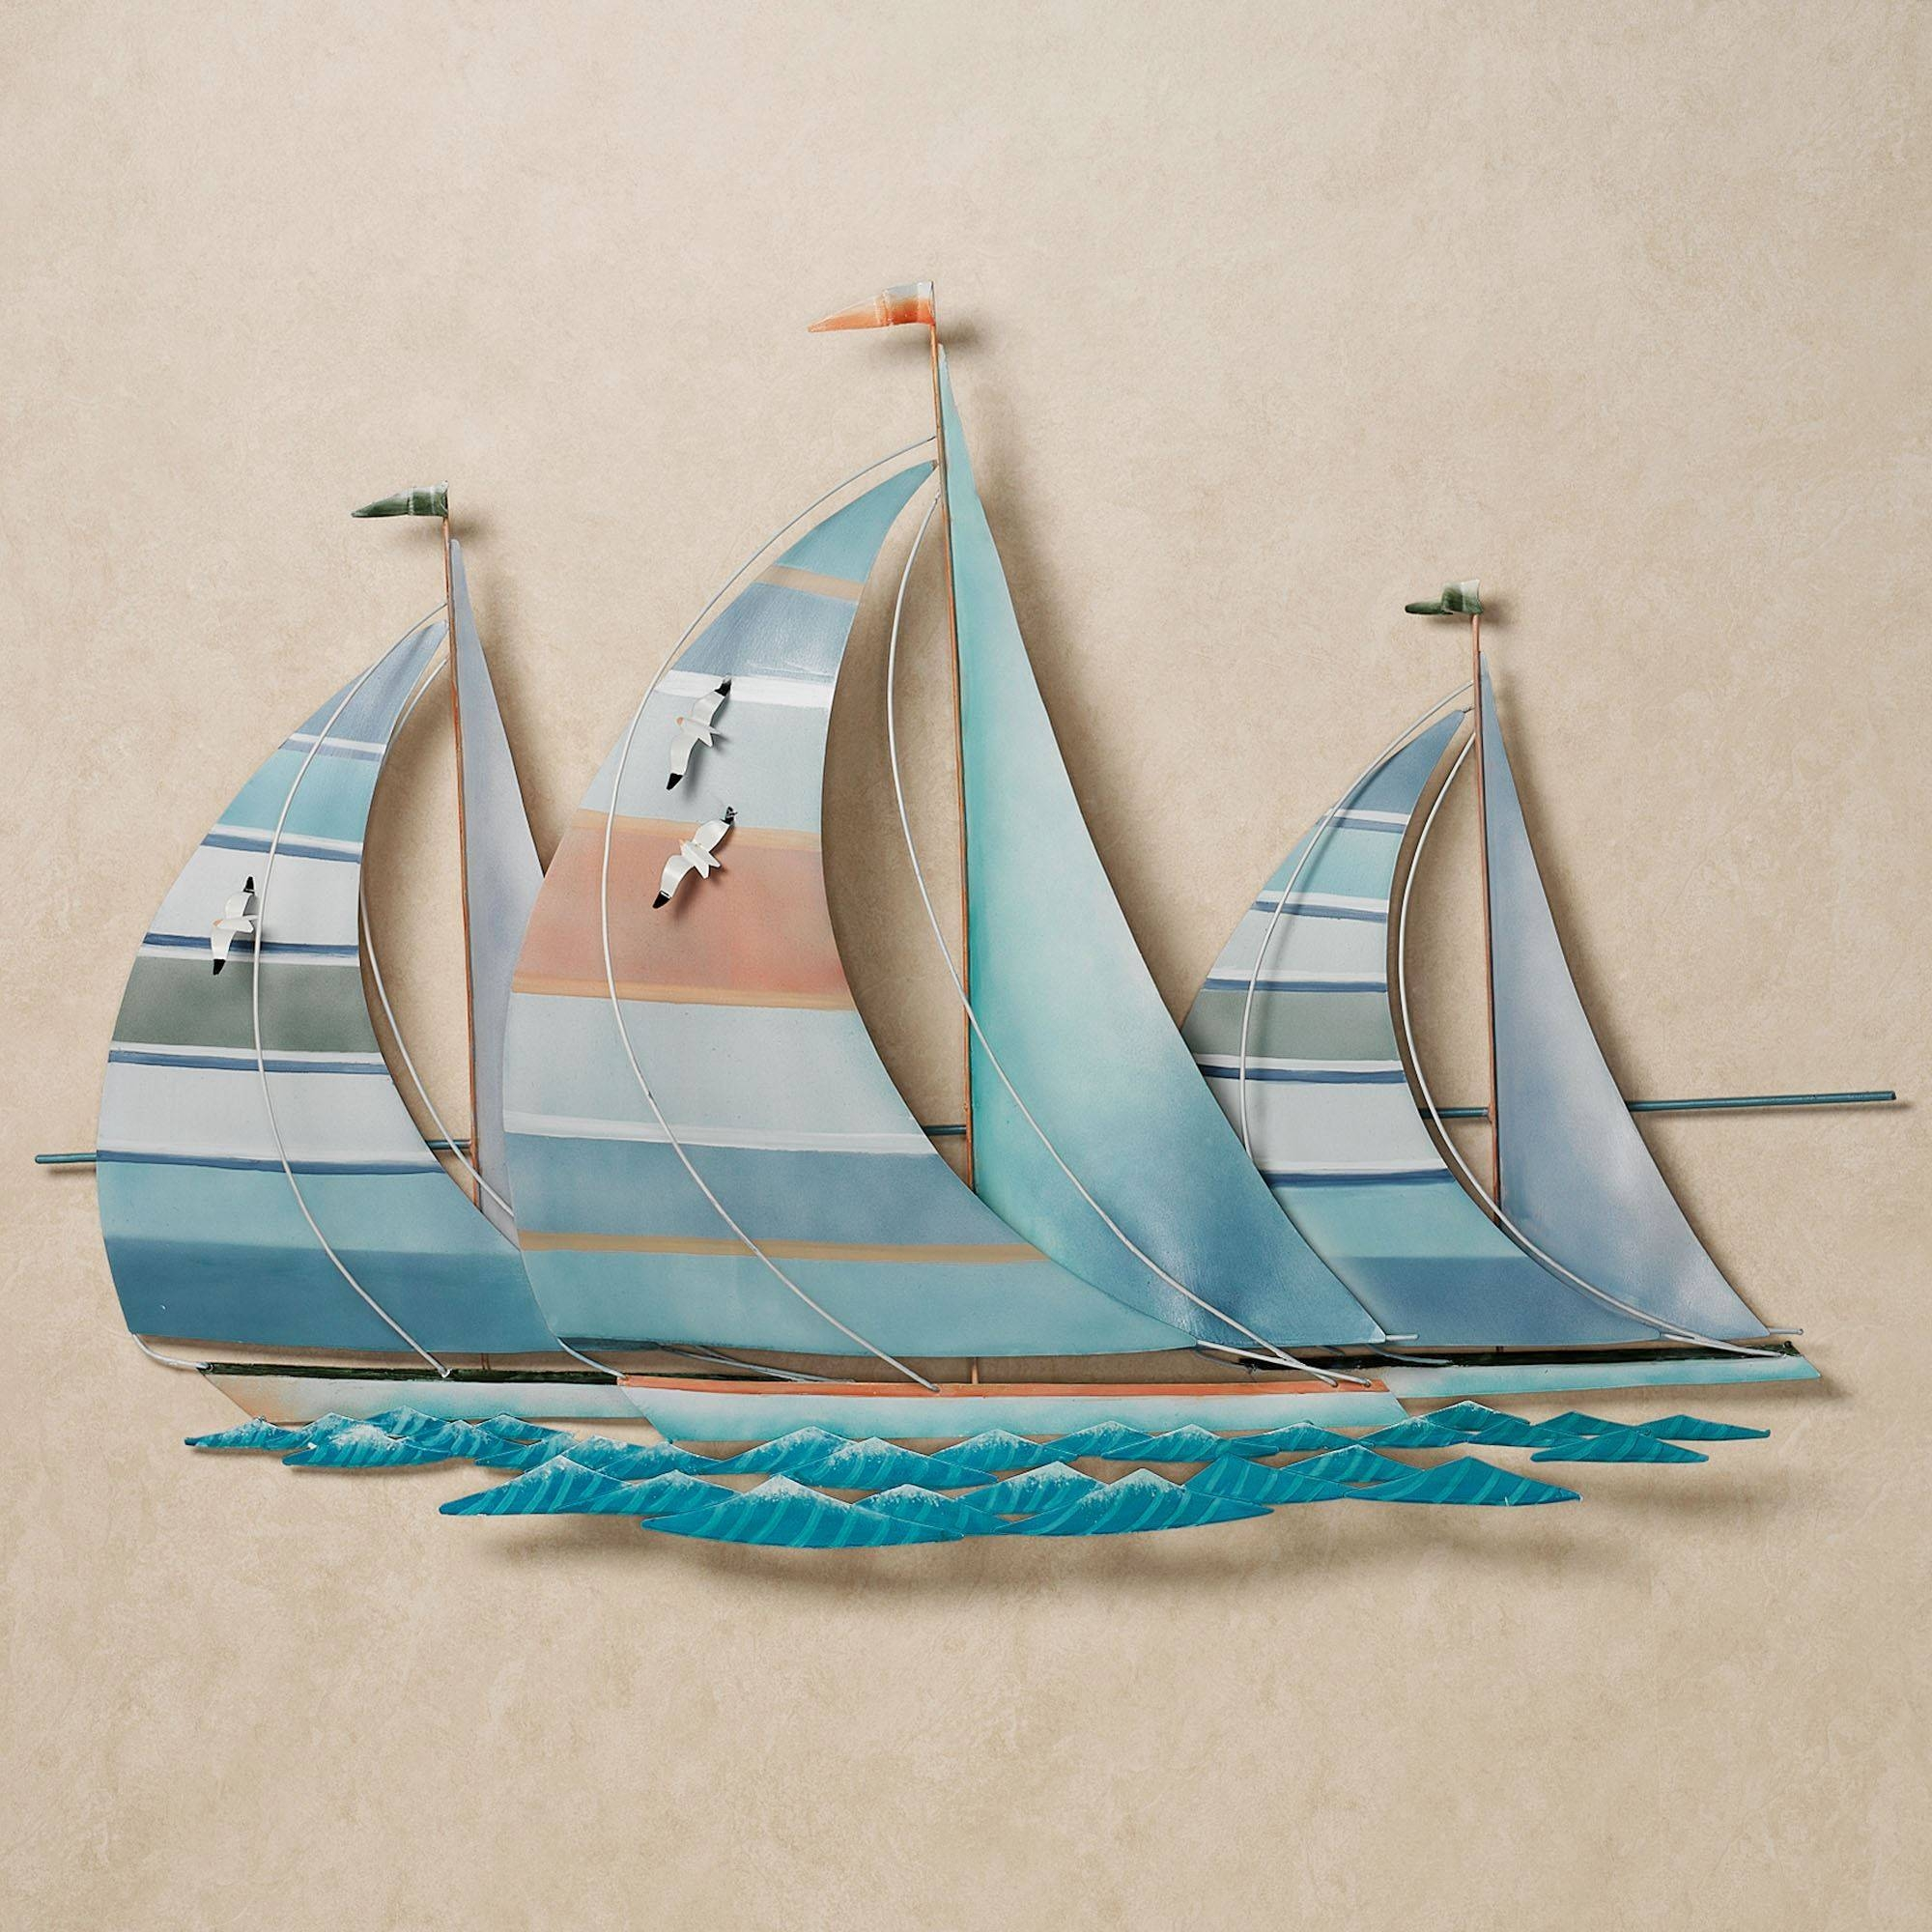 Regatta Finish Line Multi Cool Metal Sailboat Wall Sculpture For Most Recent Coastal Metal Wall Art (View 14 of 20)